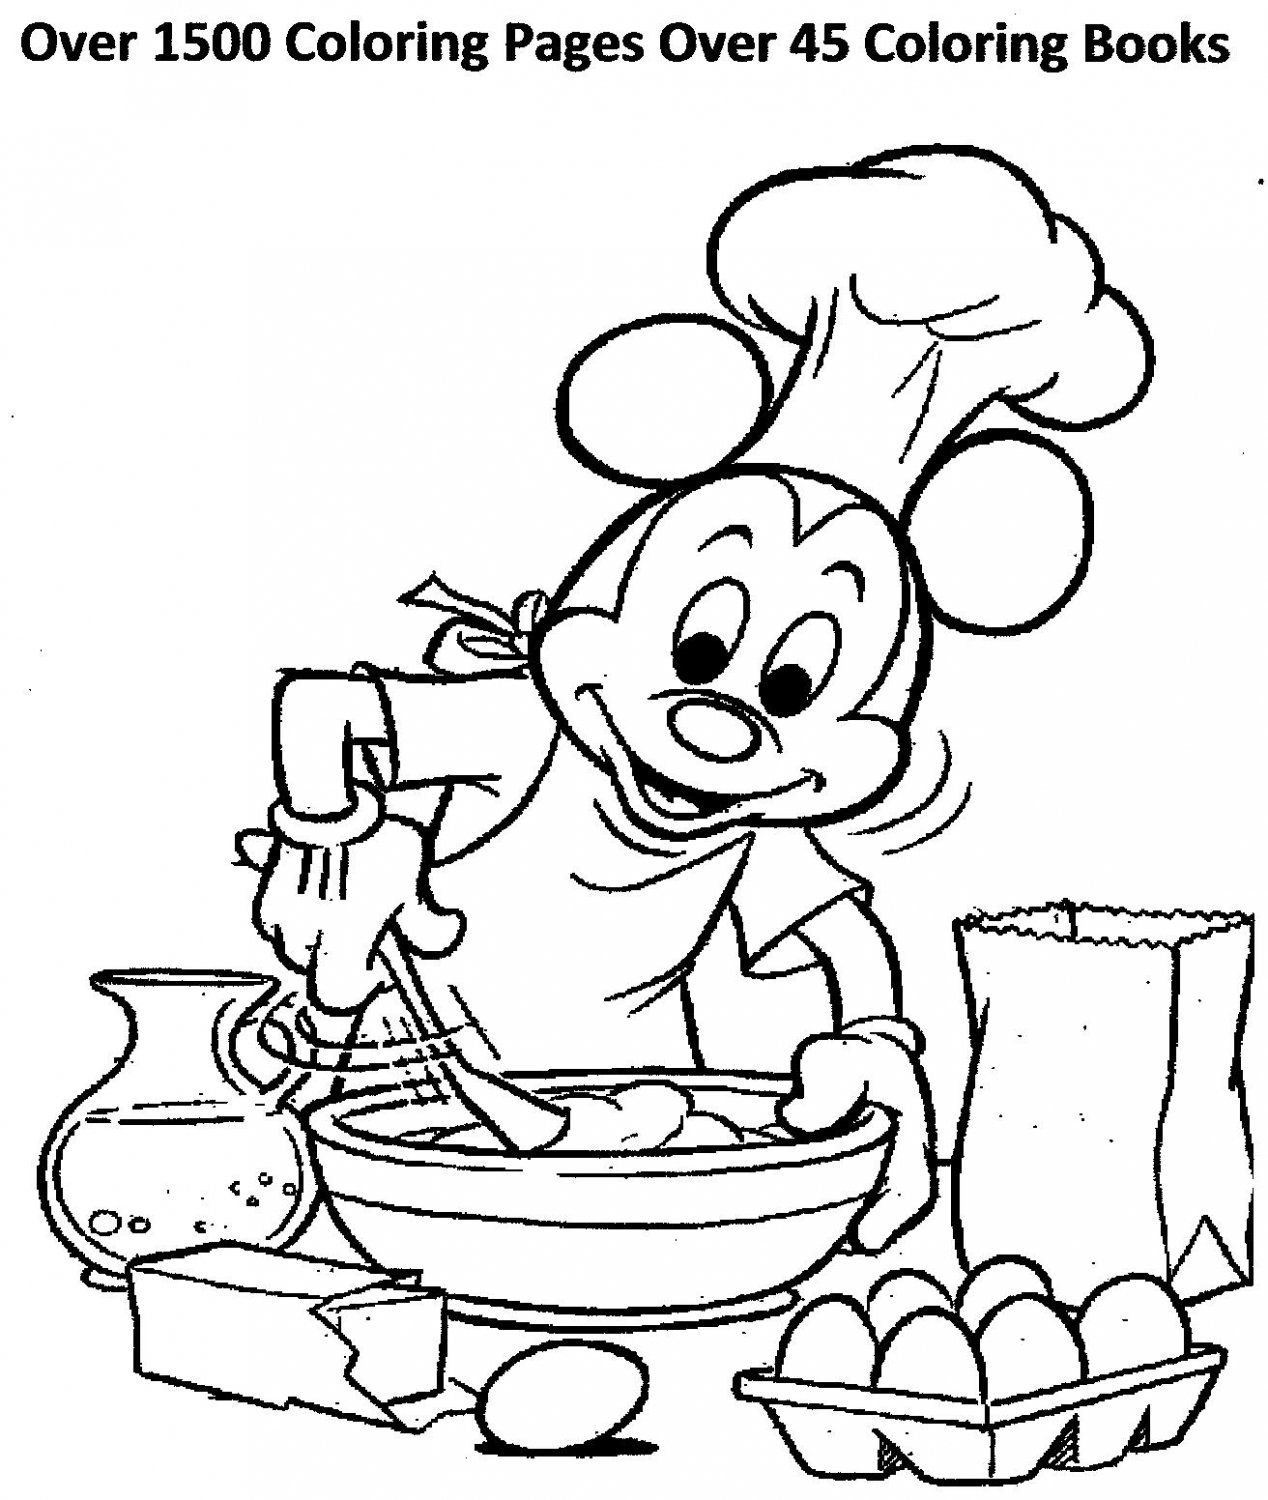 OVER 1500 COLORING PAGES OVER 45 COLORING BOOKS is part of Mickey mouse coloring pages - Over 900 Disney Coloring pages     Over 45 Coloring books, Many can be Personalized     All coloring Books and Pages are Printable     There are Color